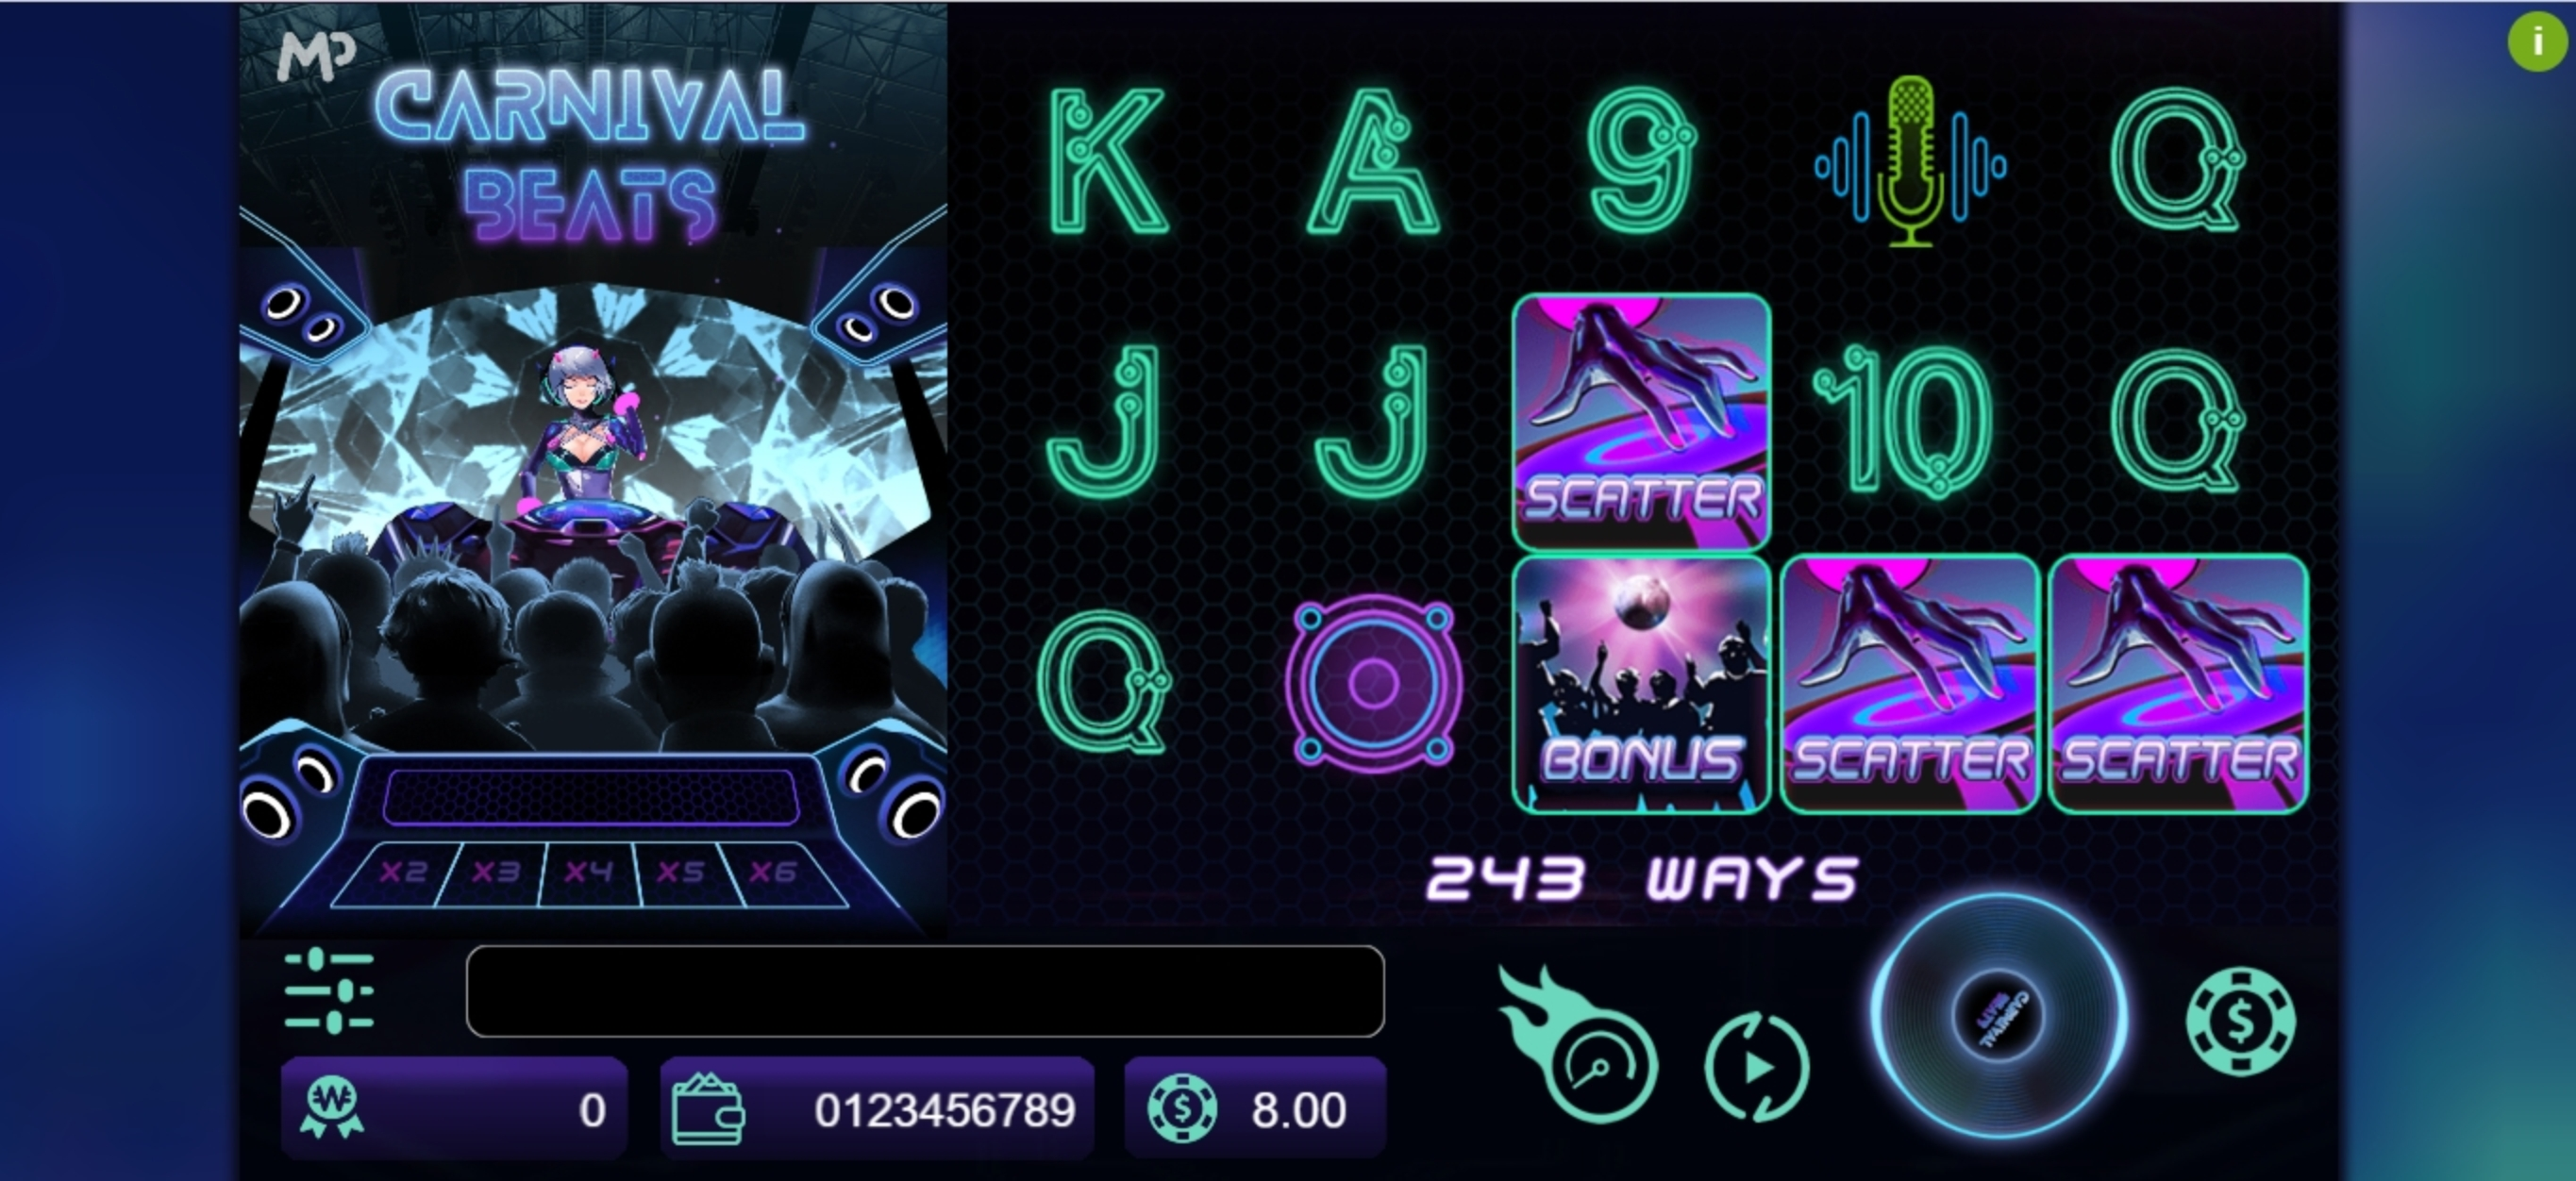 Reels in Carnival Beats Slot Game by Manna Play